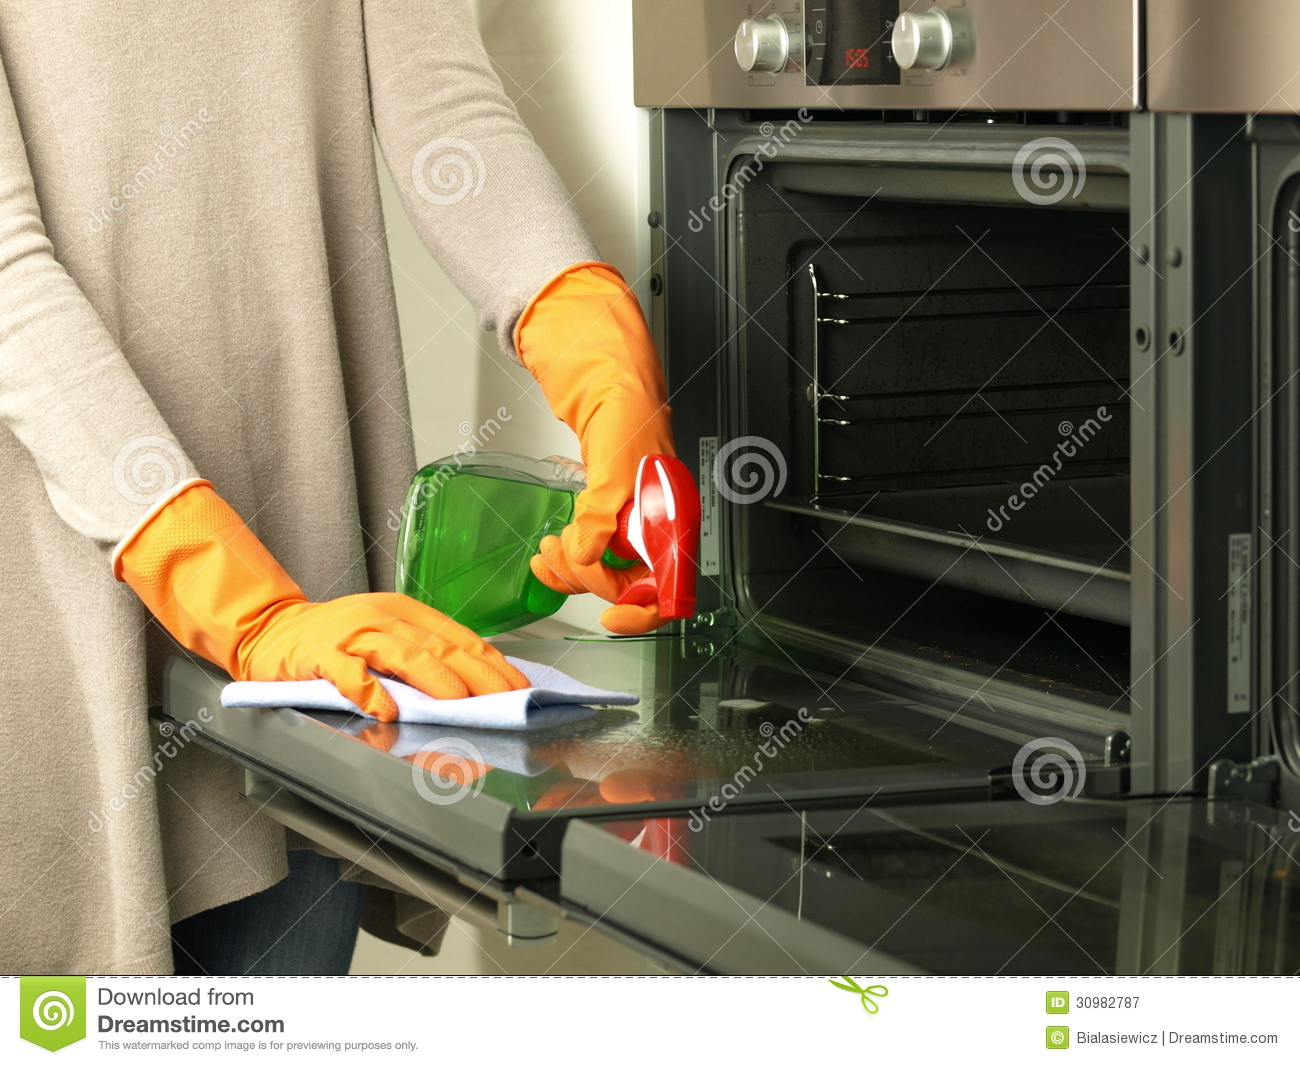 Oven cleaner with oven thumbs up cartoon royalty free - Trucos para limpiar el horno ...